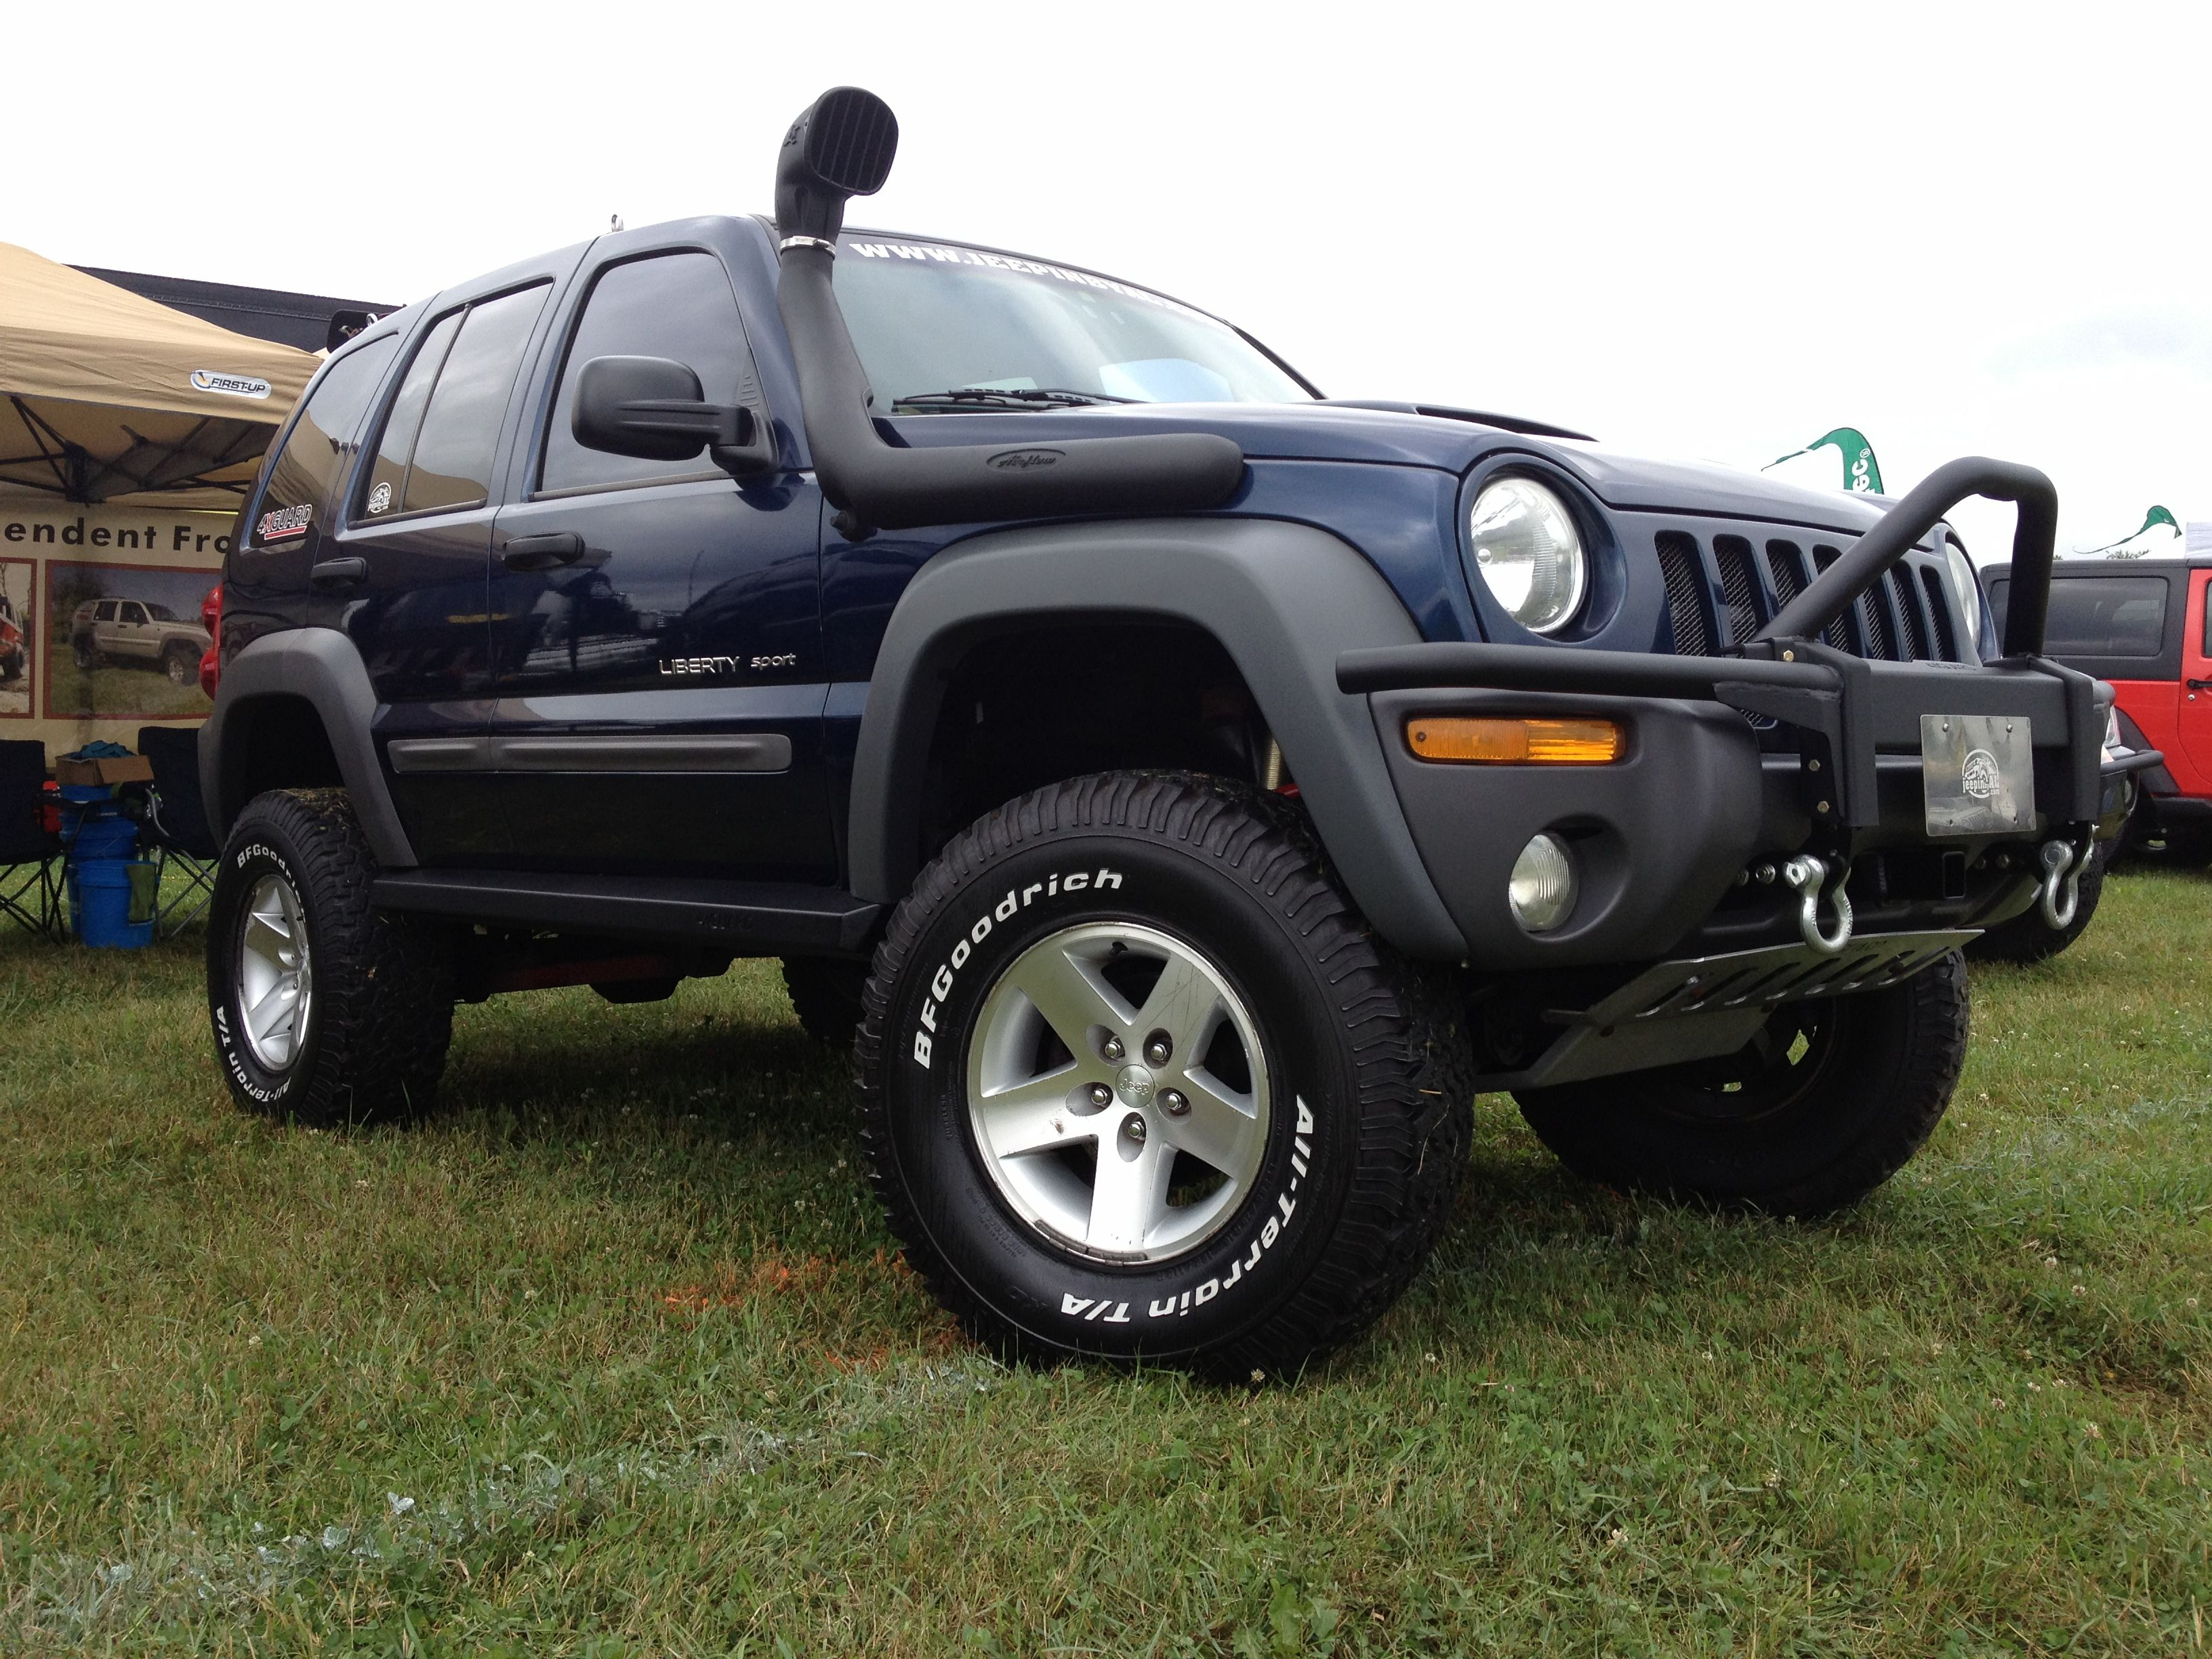 Jeep Liberty W 6 Lift Kit Jeep Liberty Jeep Liberty Lifted Jeep Liberty Renegade